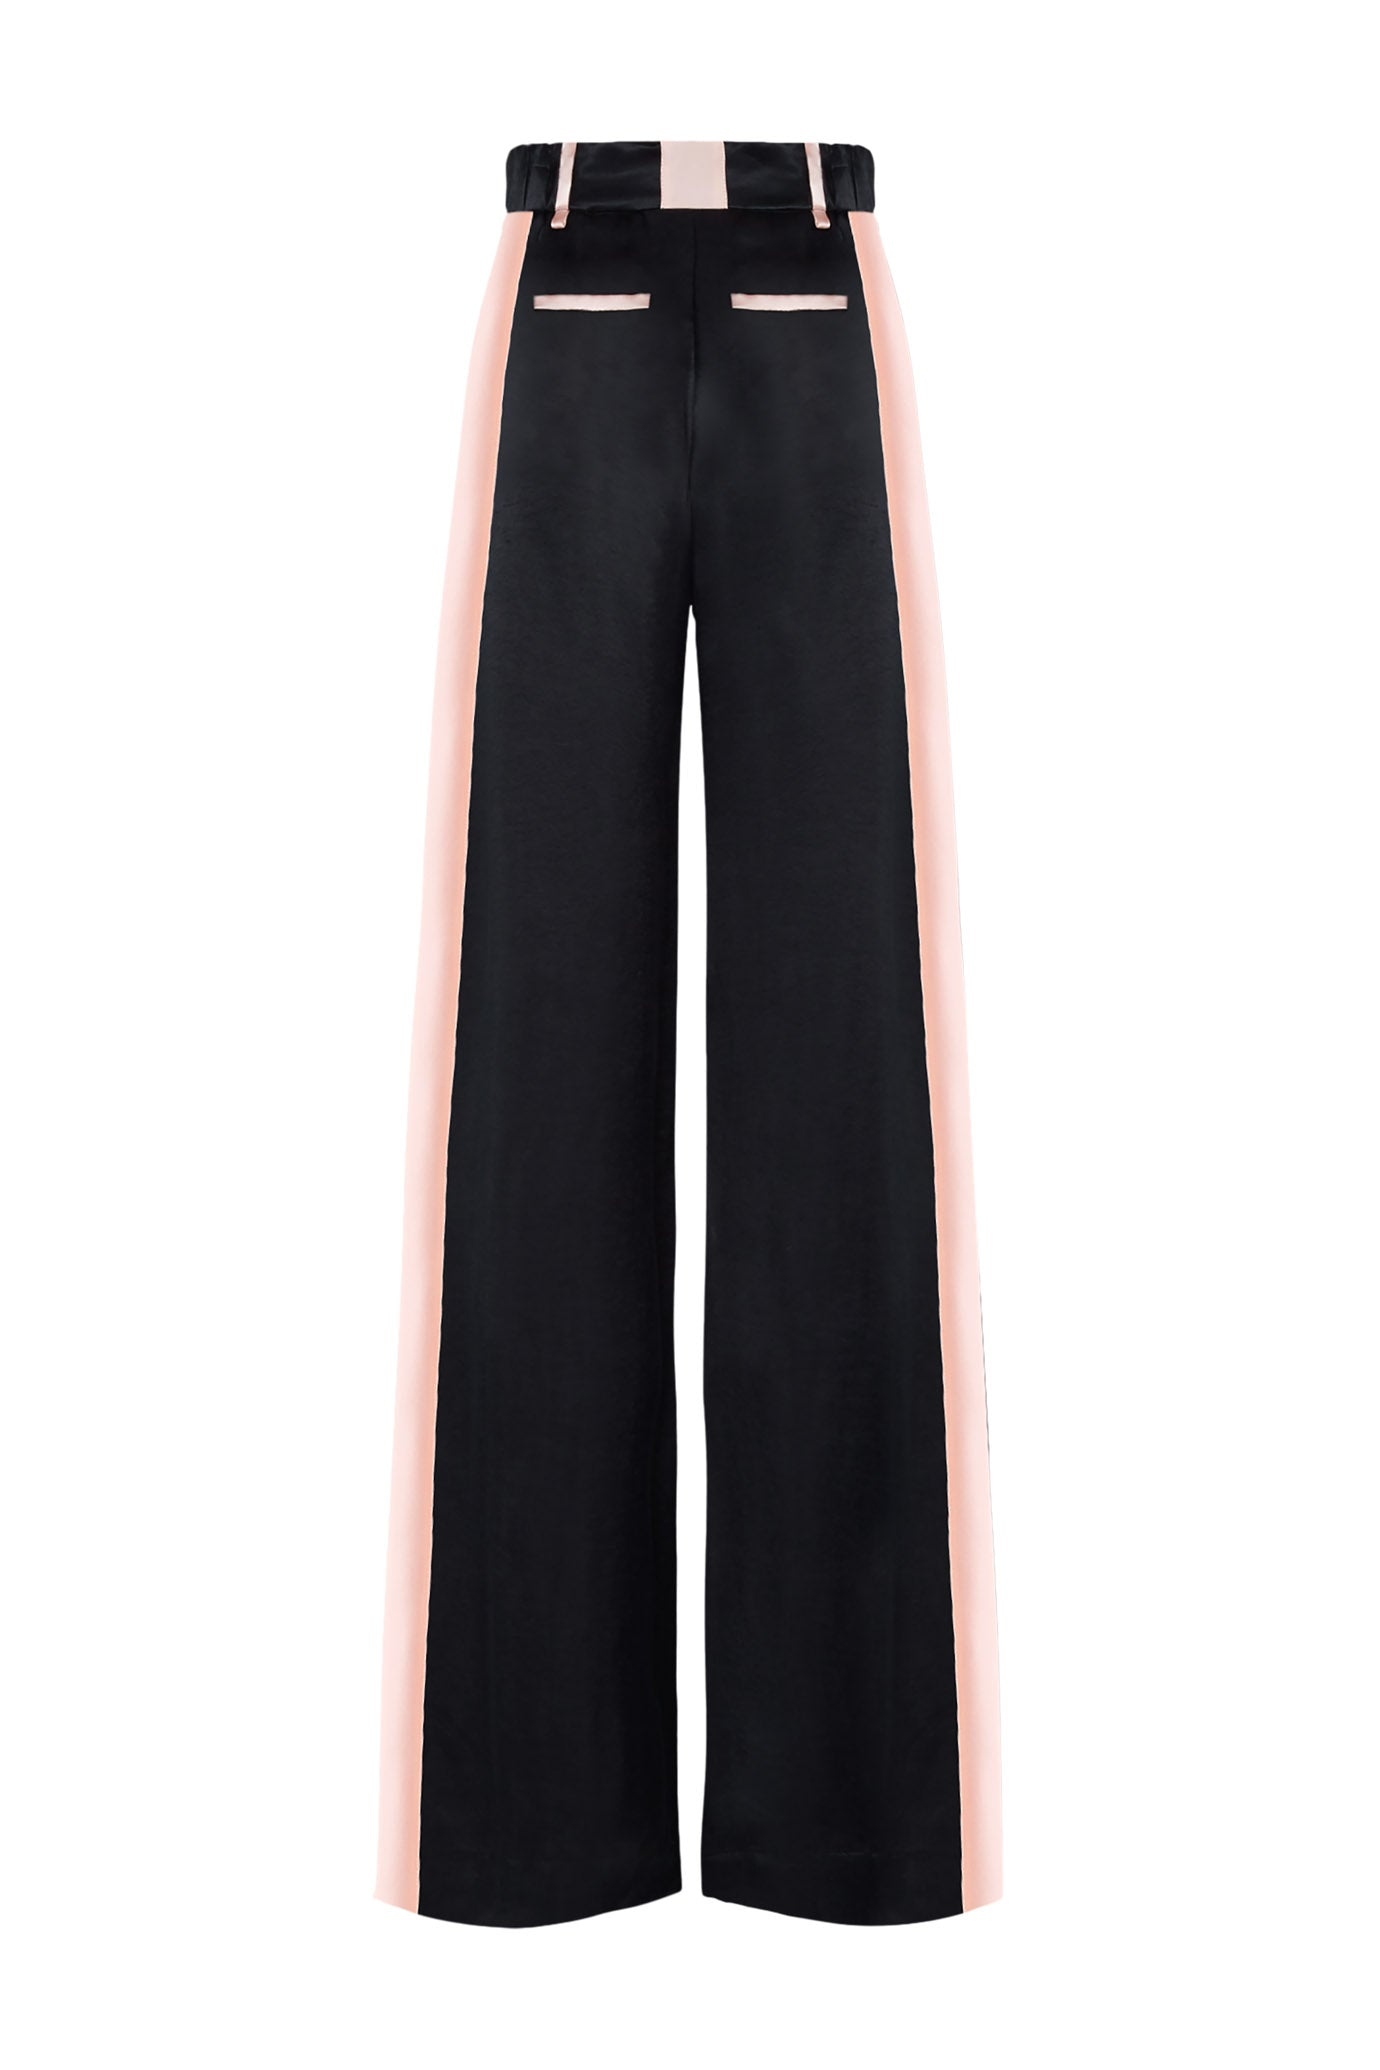 The Serena Trouser - Navy & Dusky Pink Silky Cupro - SERENA BUTE